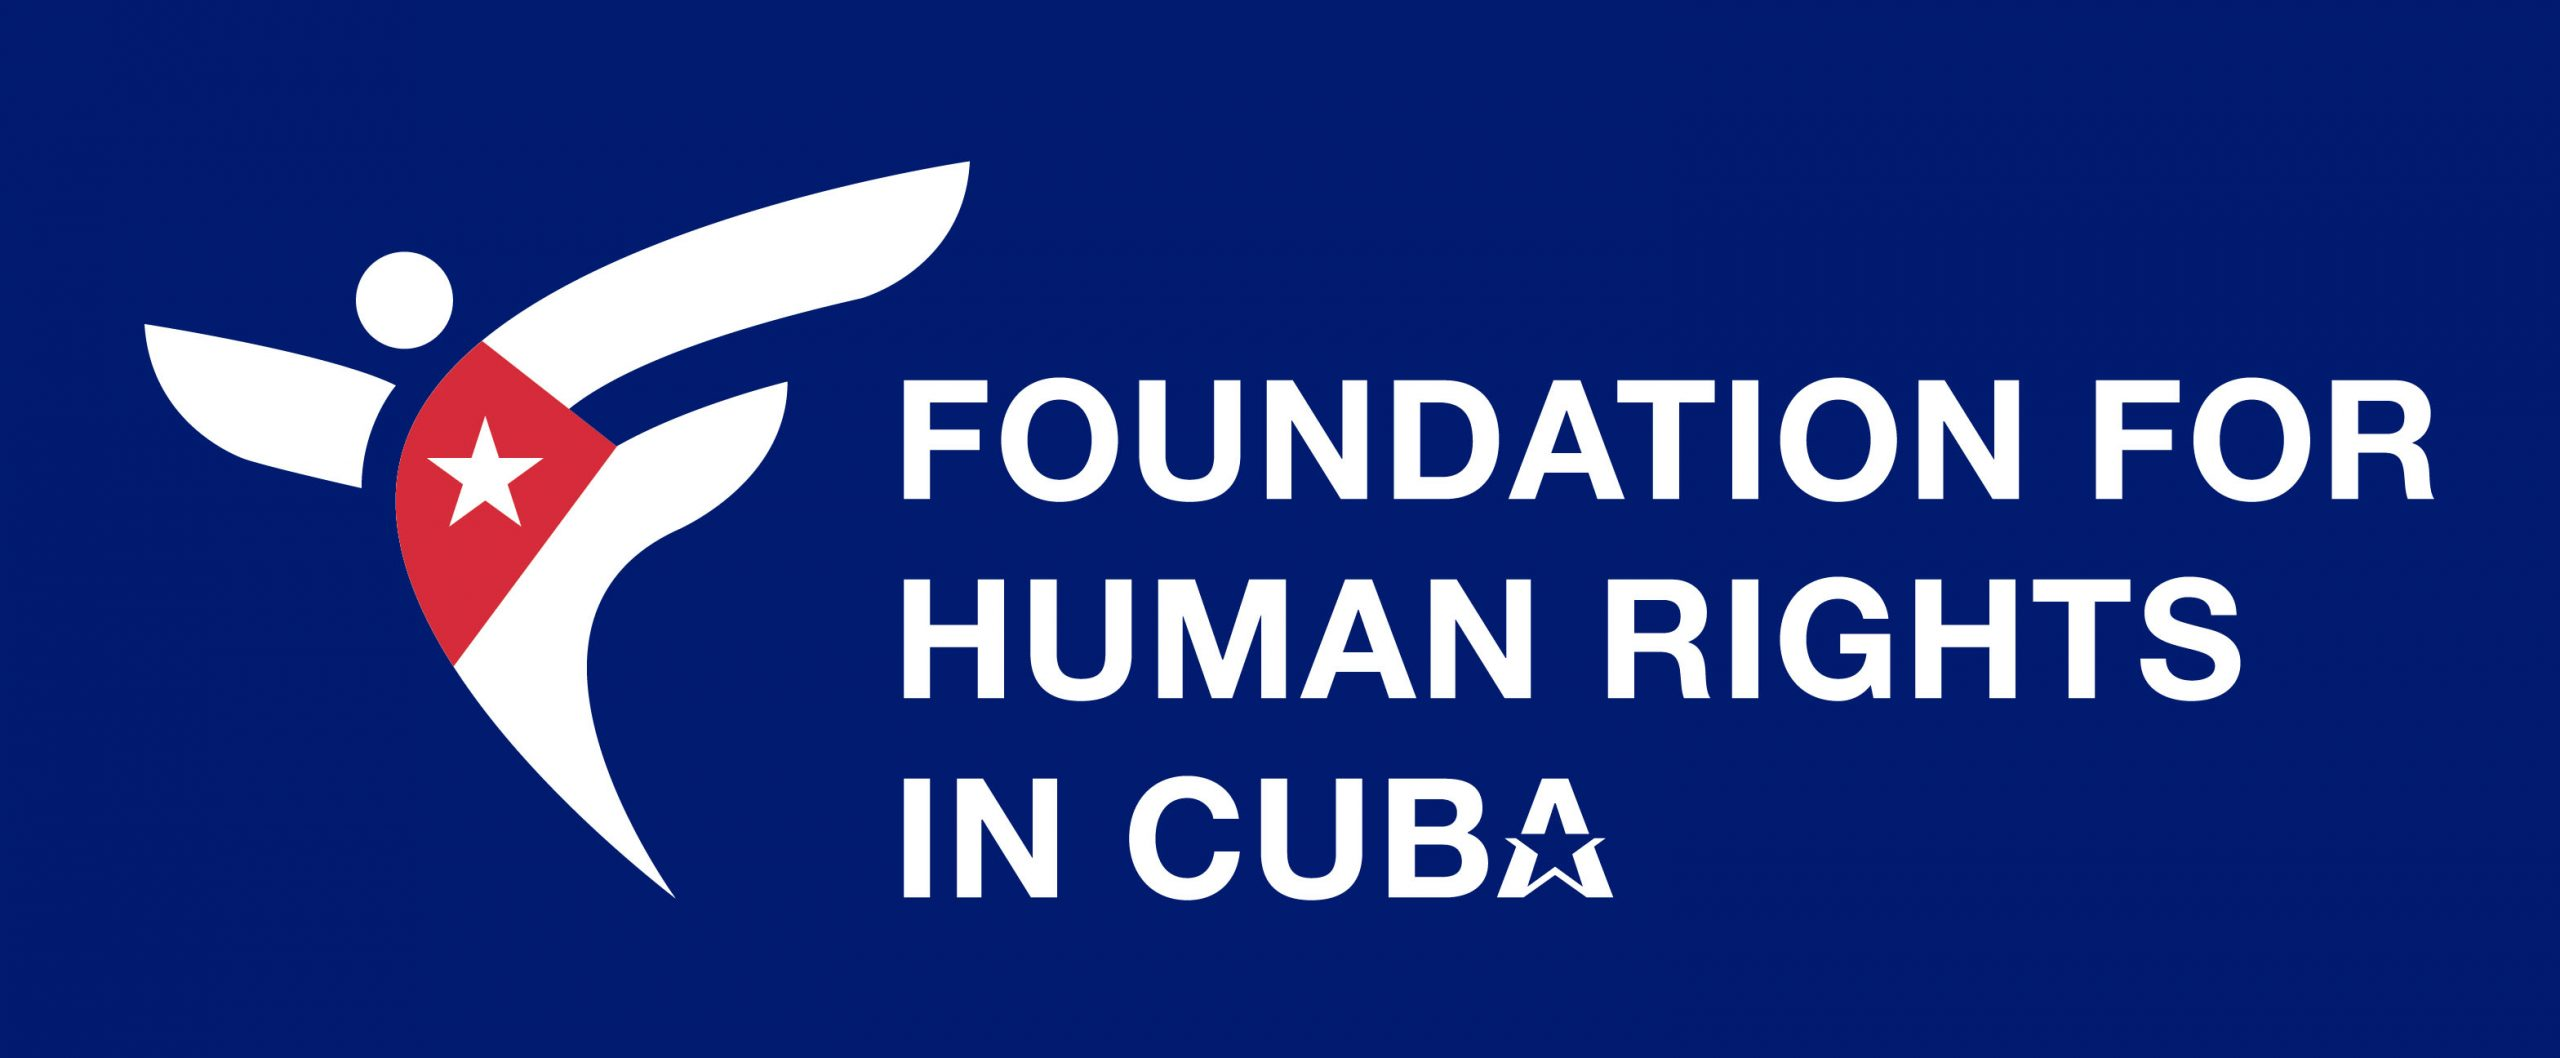 Foundation for Human Rights in Cuba